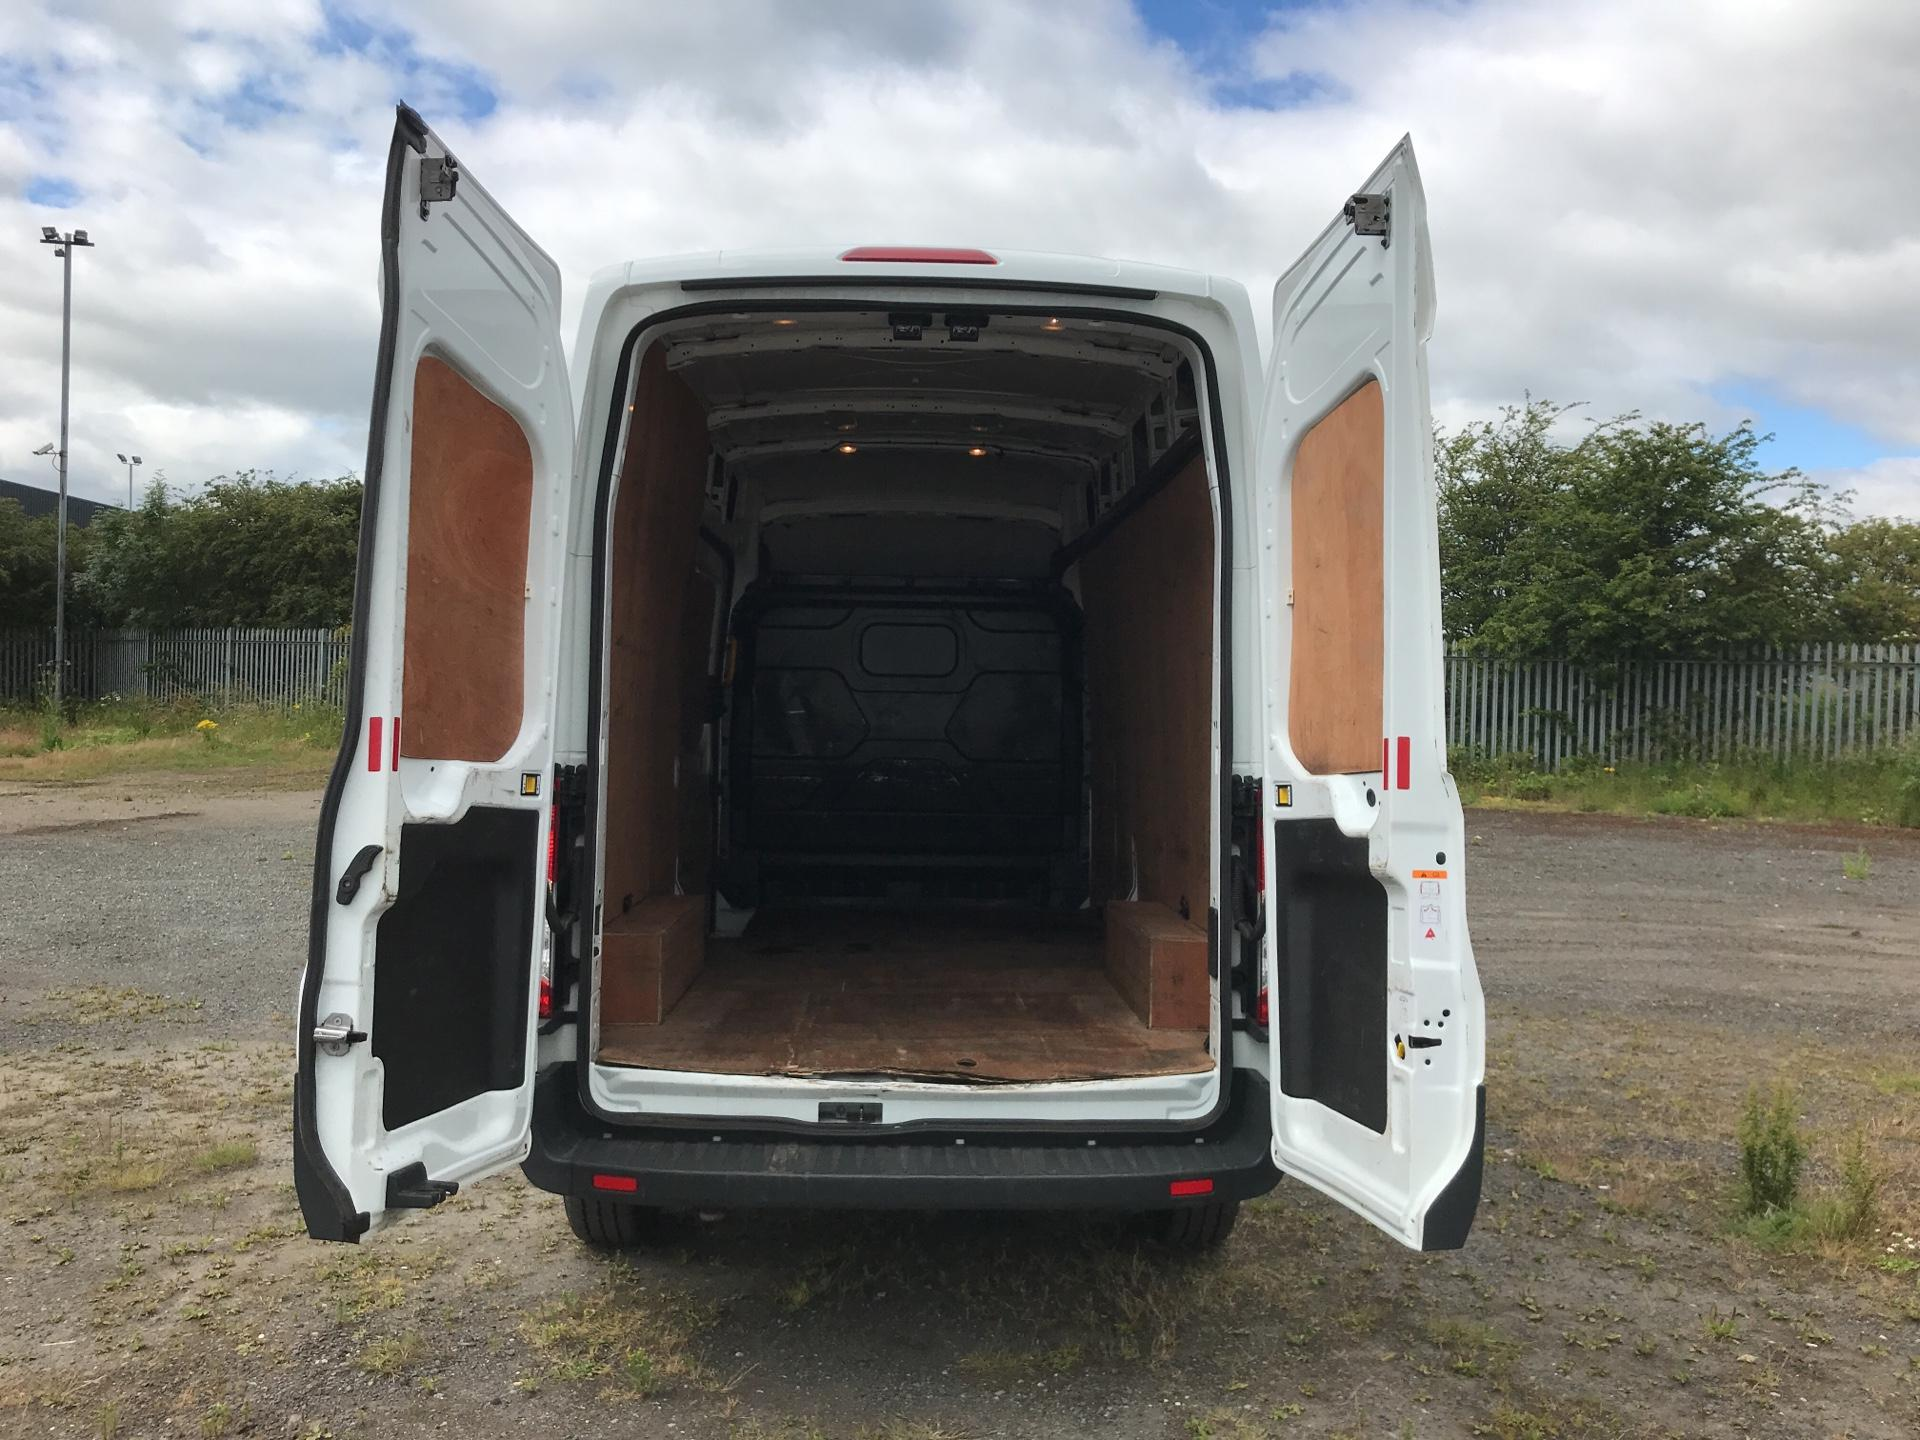 2017 Ford Transit 2.0 Tdci 130Ps H3 Van *VALUE RANGE VEHICLE CONDITION REFLECTED IN PRICE* (FL17VUW) Image 15